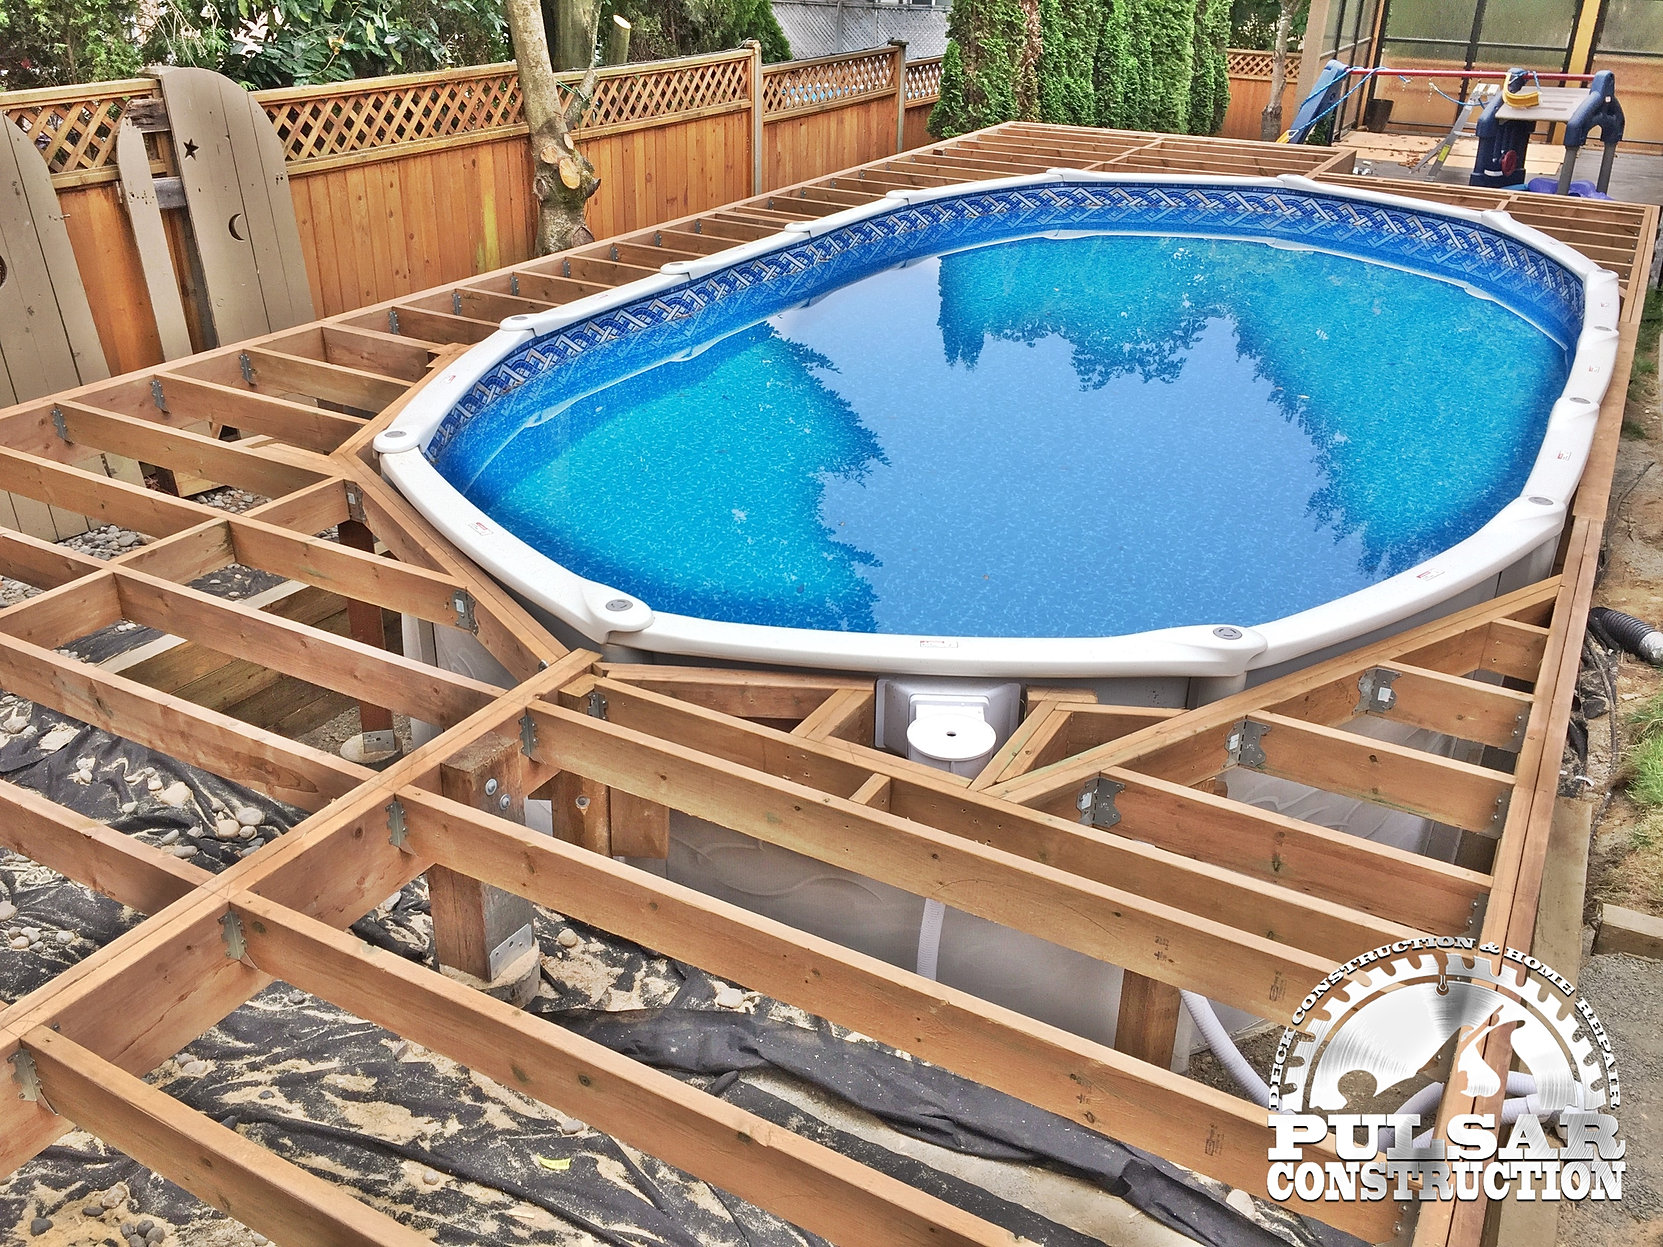 pulsar construction above ground pool deck 45 0221 - Above Ground Pool Deck